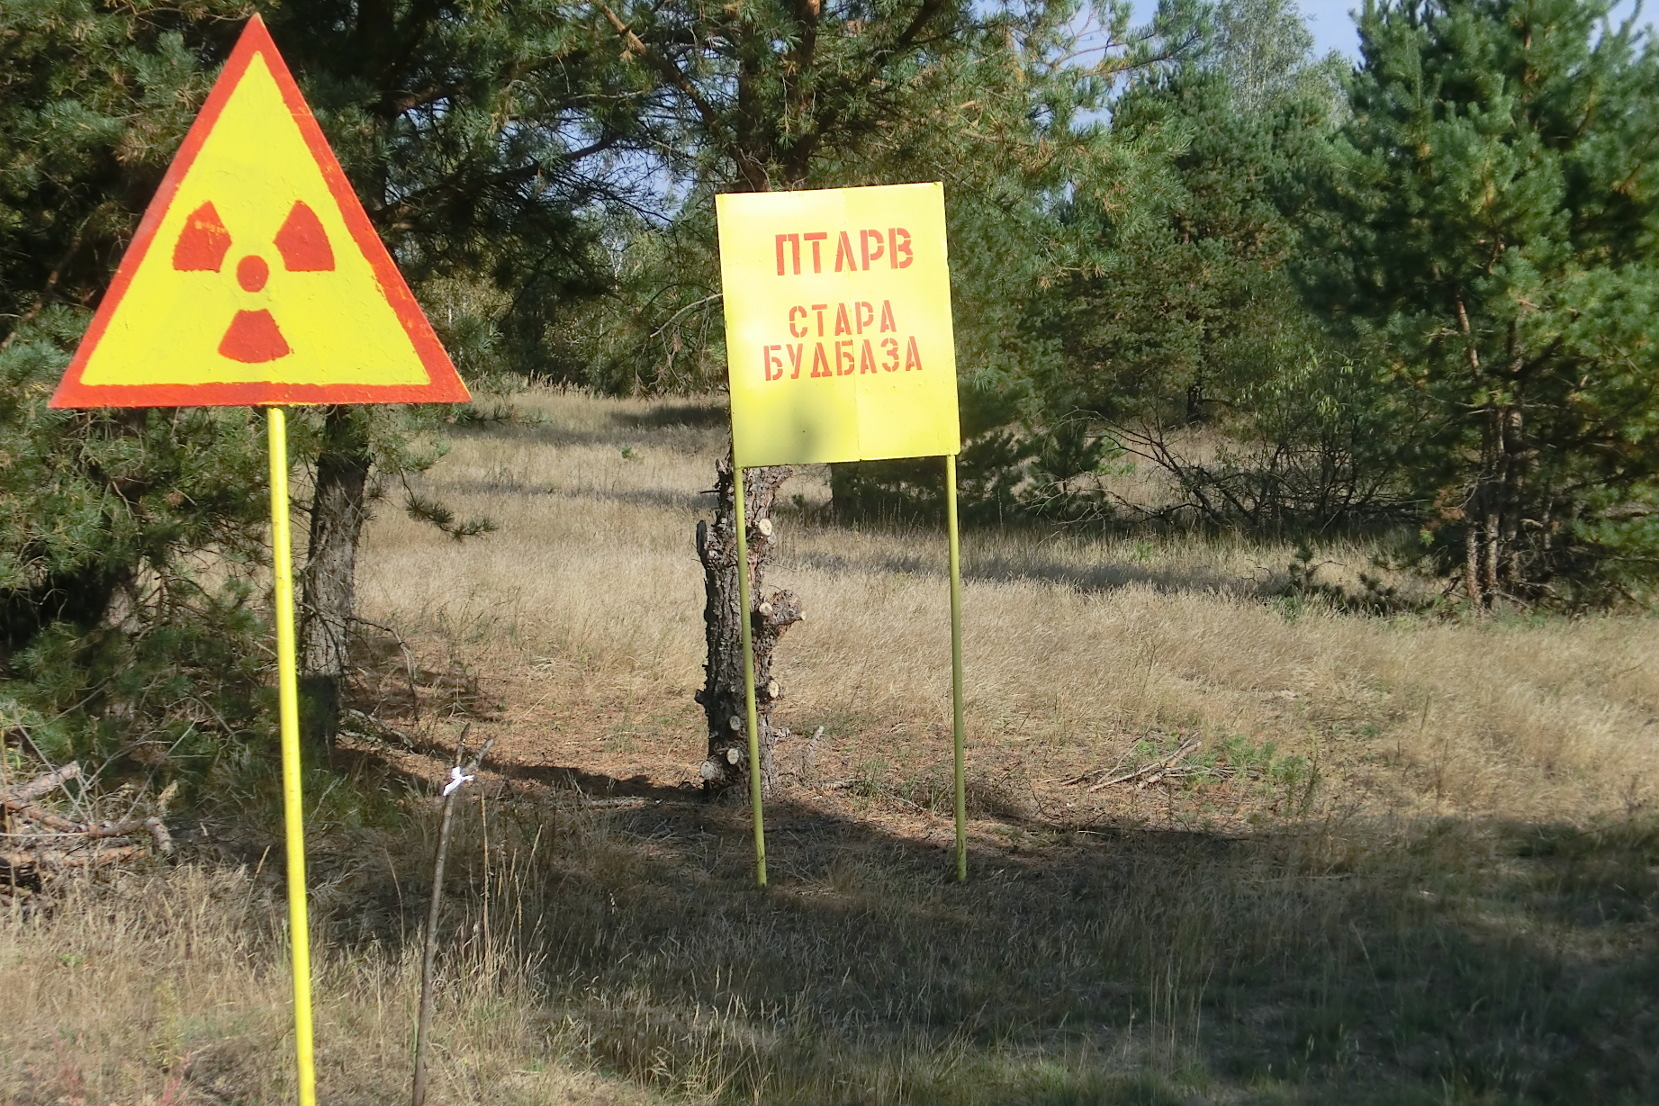 The Institute of Radioecology and Radiation Protection deals with detection and specification of radionuclides in the environment, as well as risk assessment for humans. Image: contaminated areas around the Chernobyl nuclear power plant (photo: Walther)